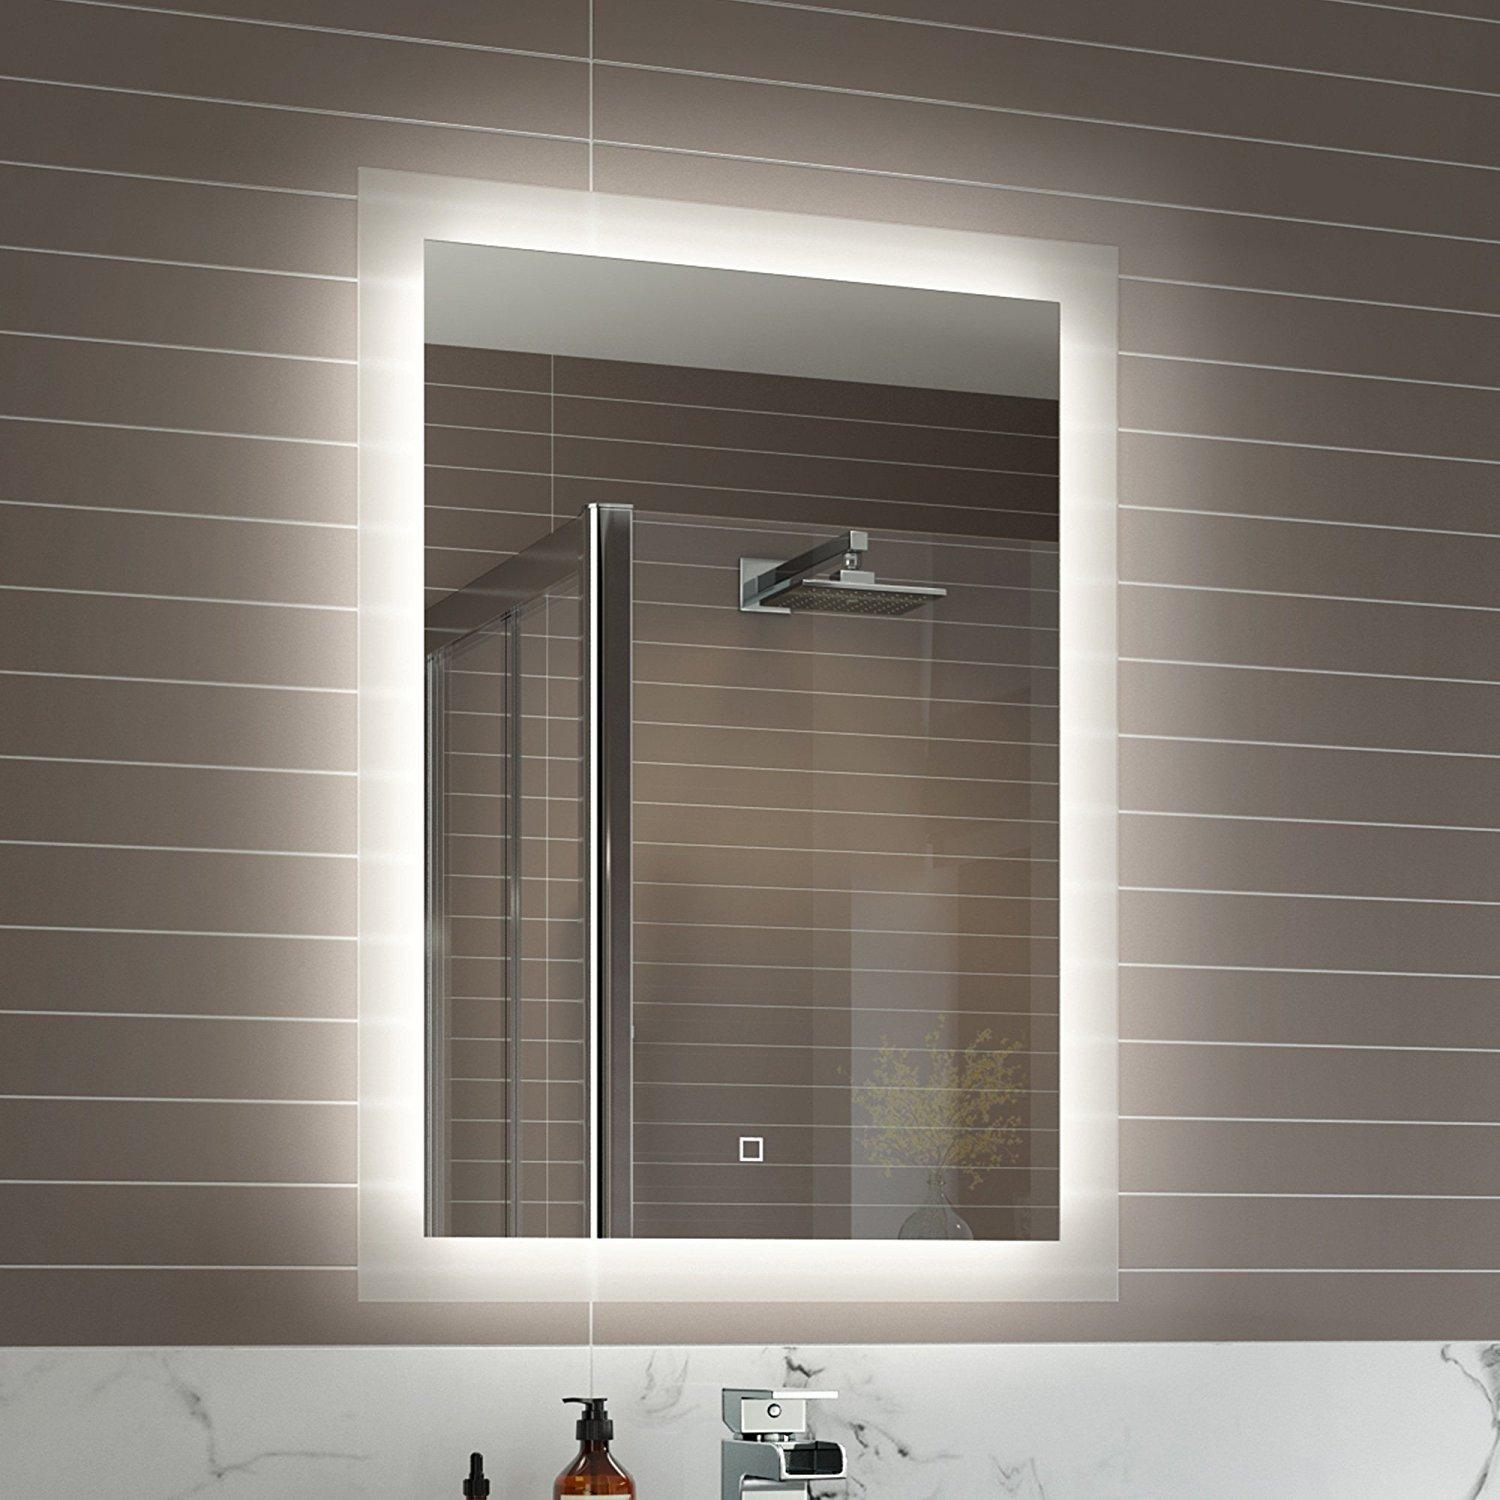 Bathroom : Extraordinary Framed Bathroom Mirrors Frameless With Regard To Bathroom Mirrors With Led Lights (Image 3 of 20)